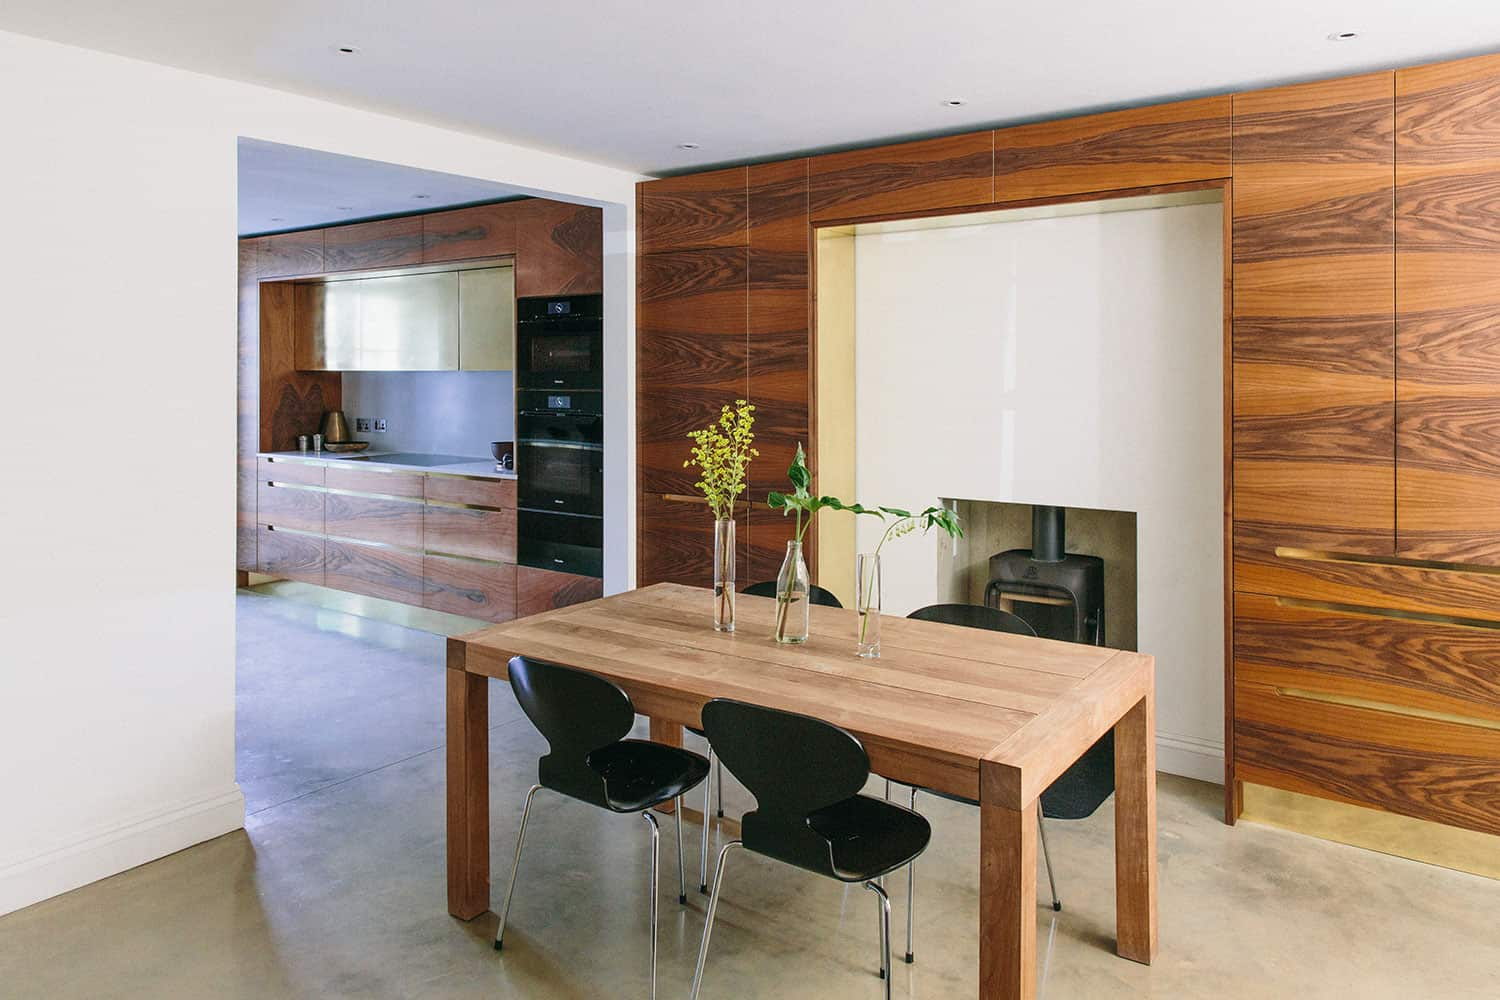 Bespoke beautiful kitchen interior as seen from the dining room with a fireplace.